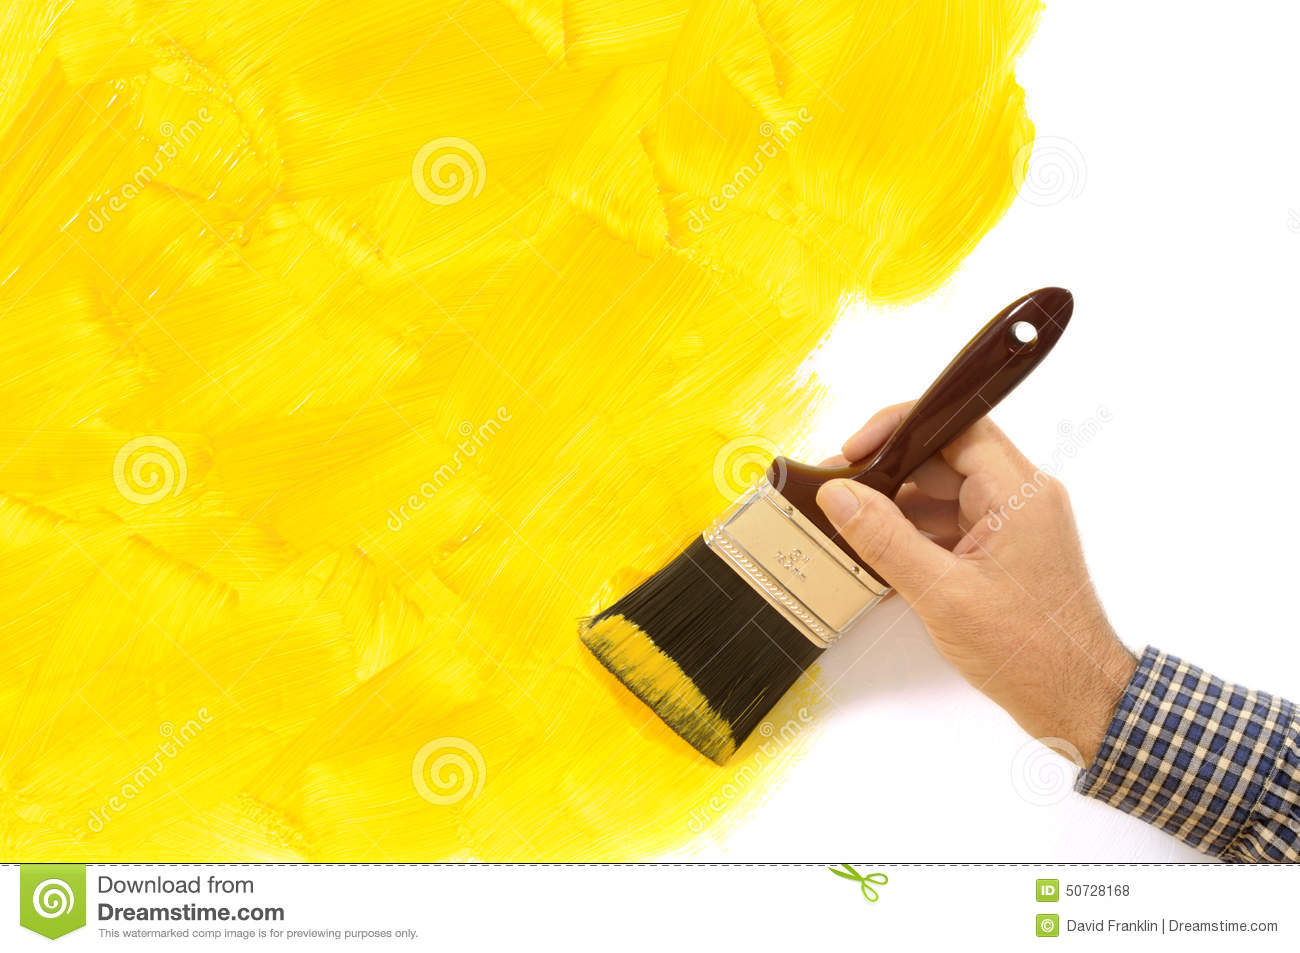 Painter And Decorator Prices >> House Painting And Decorating - Unfinished Painted Yellow Wall With Man Holding Paintbrush. Copy ...